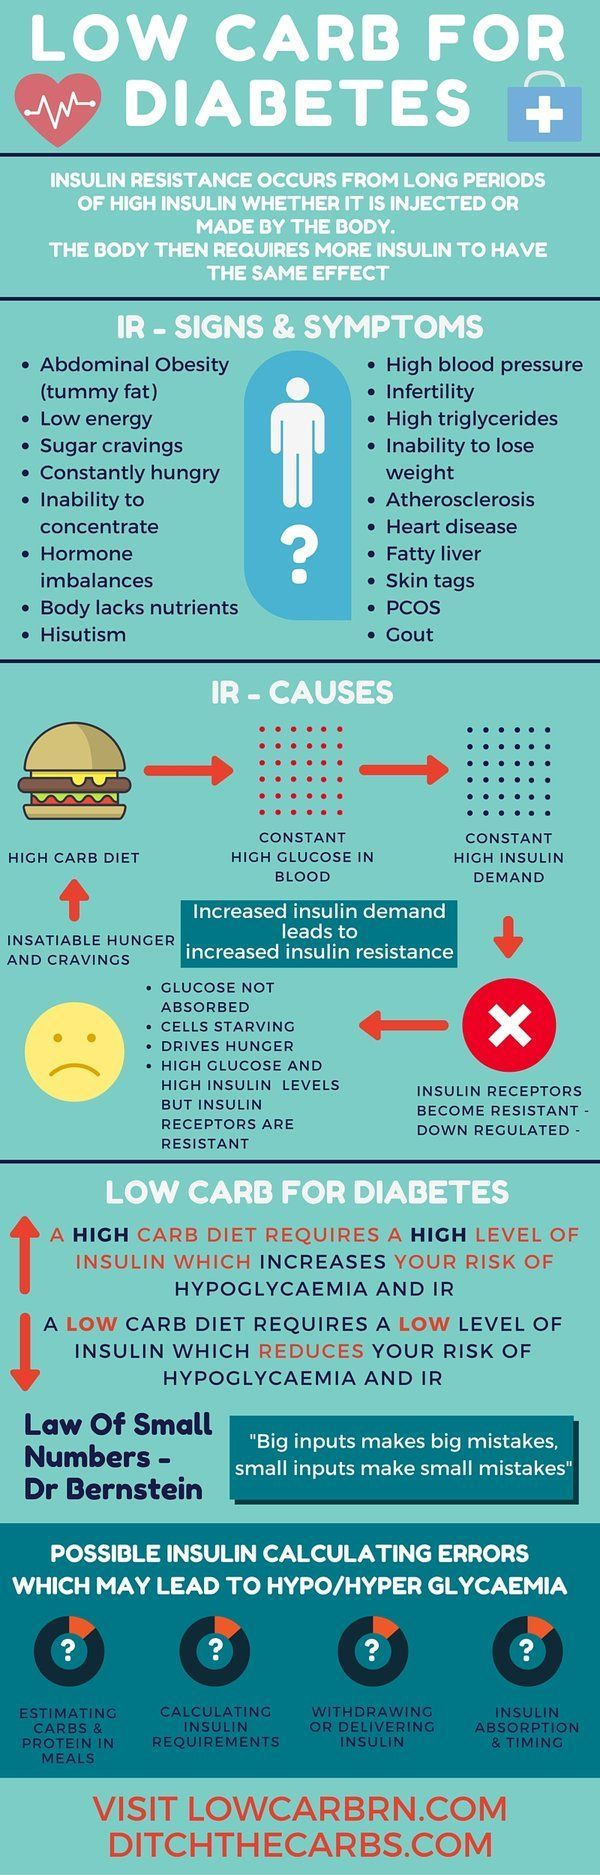 Low carb for diabetes - Read the full article which explains insulin resistance and how low carb can help all forms of diabetes. Gain control of your blood glucose levels. | ditchthecarbs.com via @Ditch The Carbs